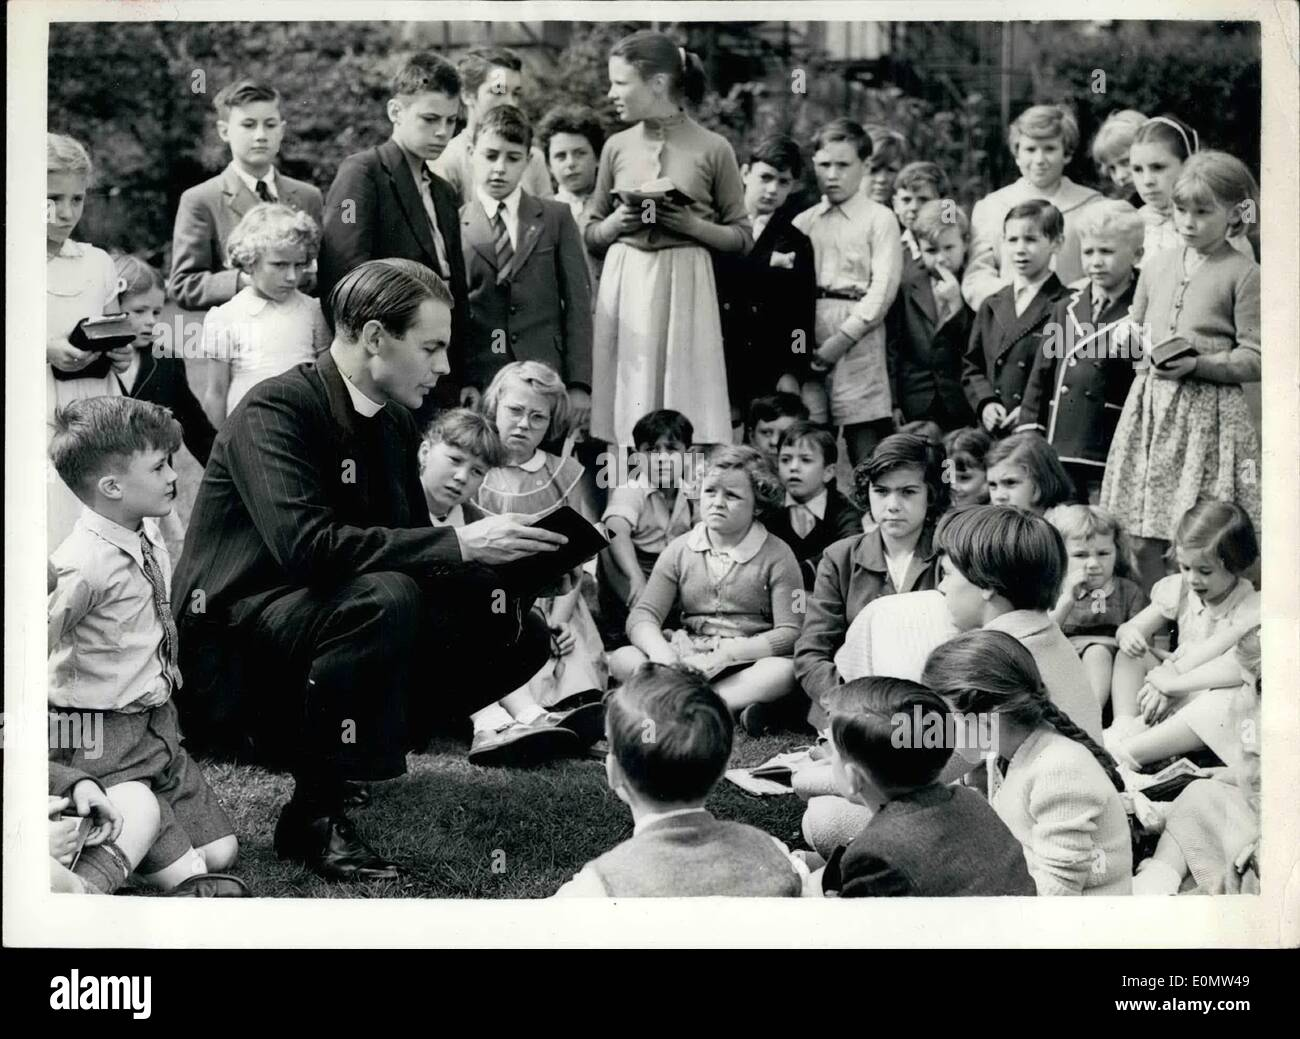 Jul. 07, 1956 - England's new parson-batsman takes his bible class.: The Rev. David Stuart Sheppard, curate of St. Mar's church, Islington, was yesterday chosen to play for England against Australia in the fourth test match at the Old Trafford on Thursday. He was told the news when he was taking his normal Sunday school class yesterday. Photo shows:- The Rev. David Sheppard, who has been chosen to play for England against Australia in the fourth test seen taking his bible class yesterday. - Stock Image